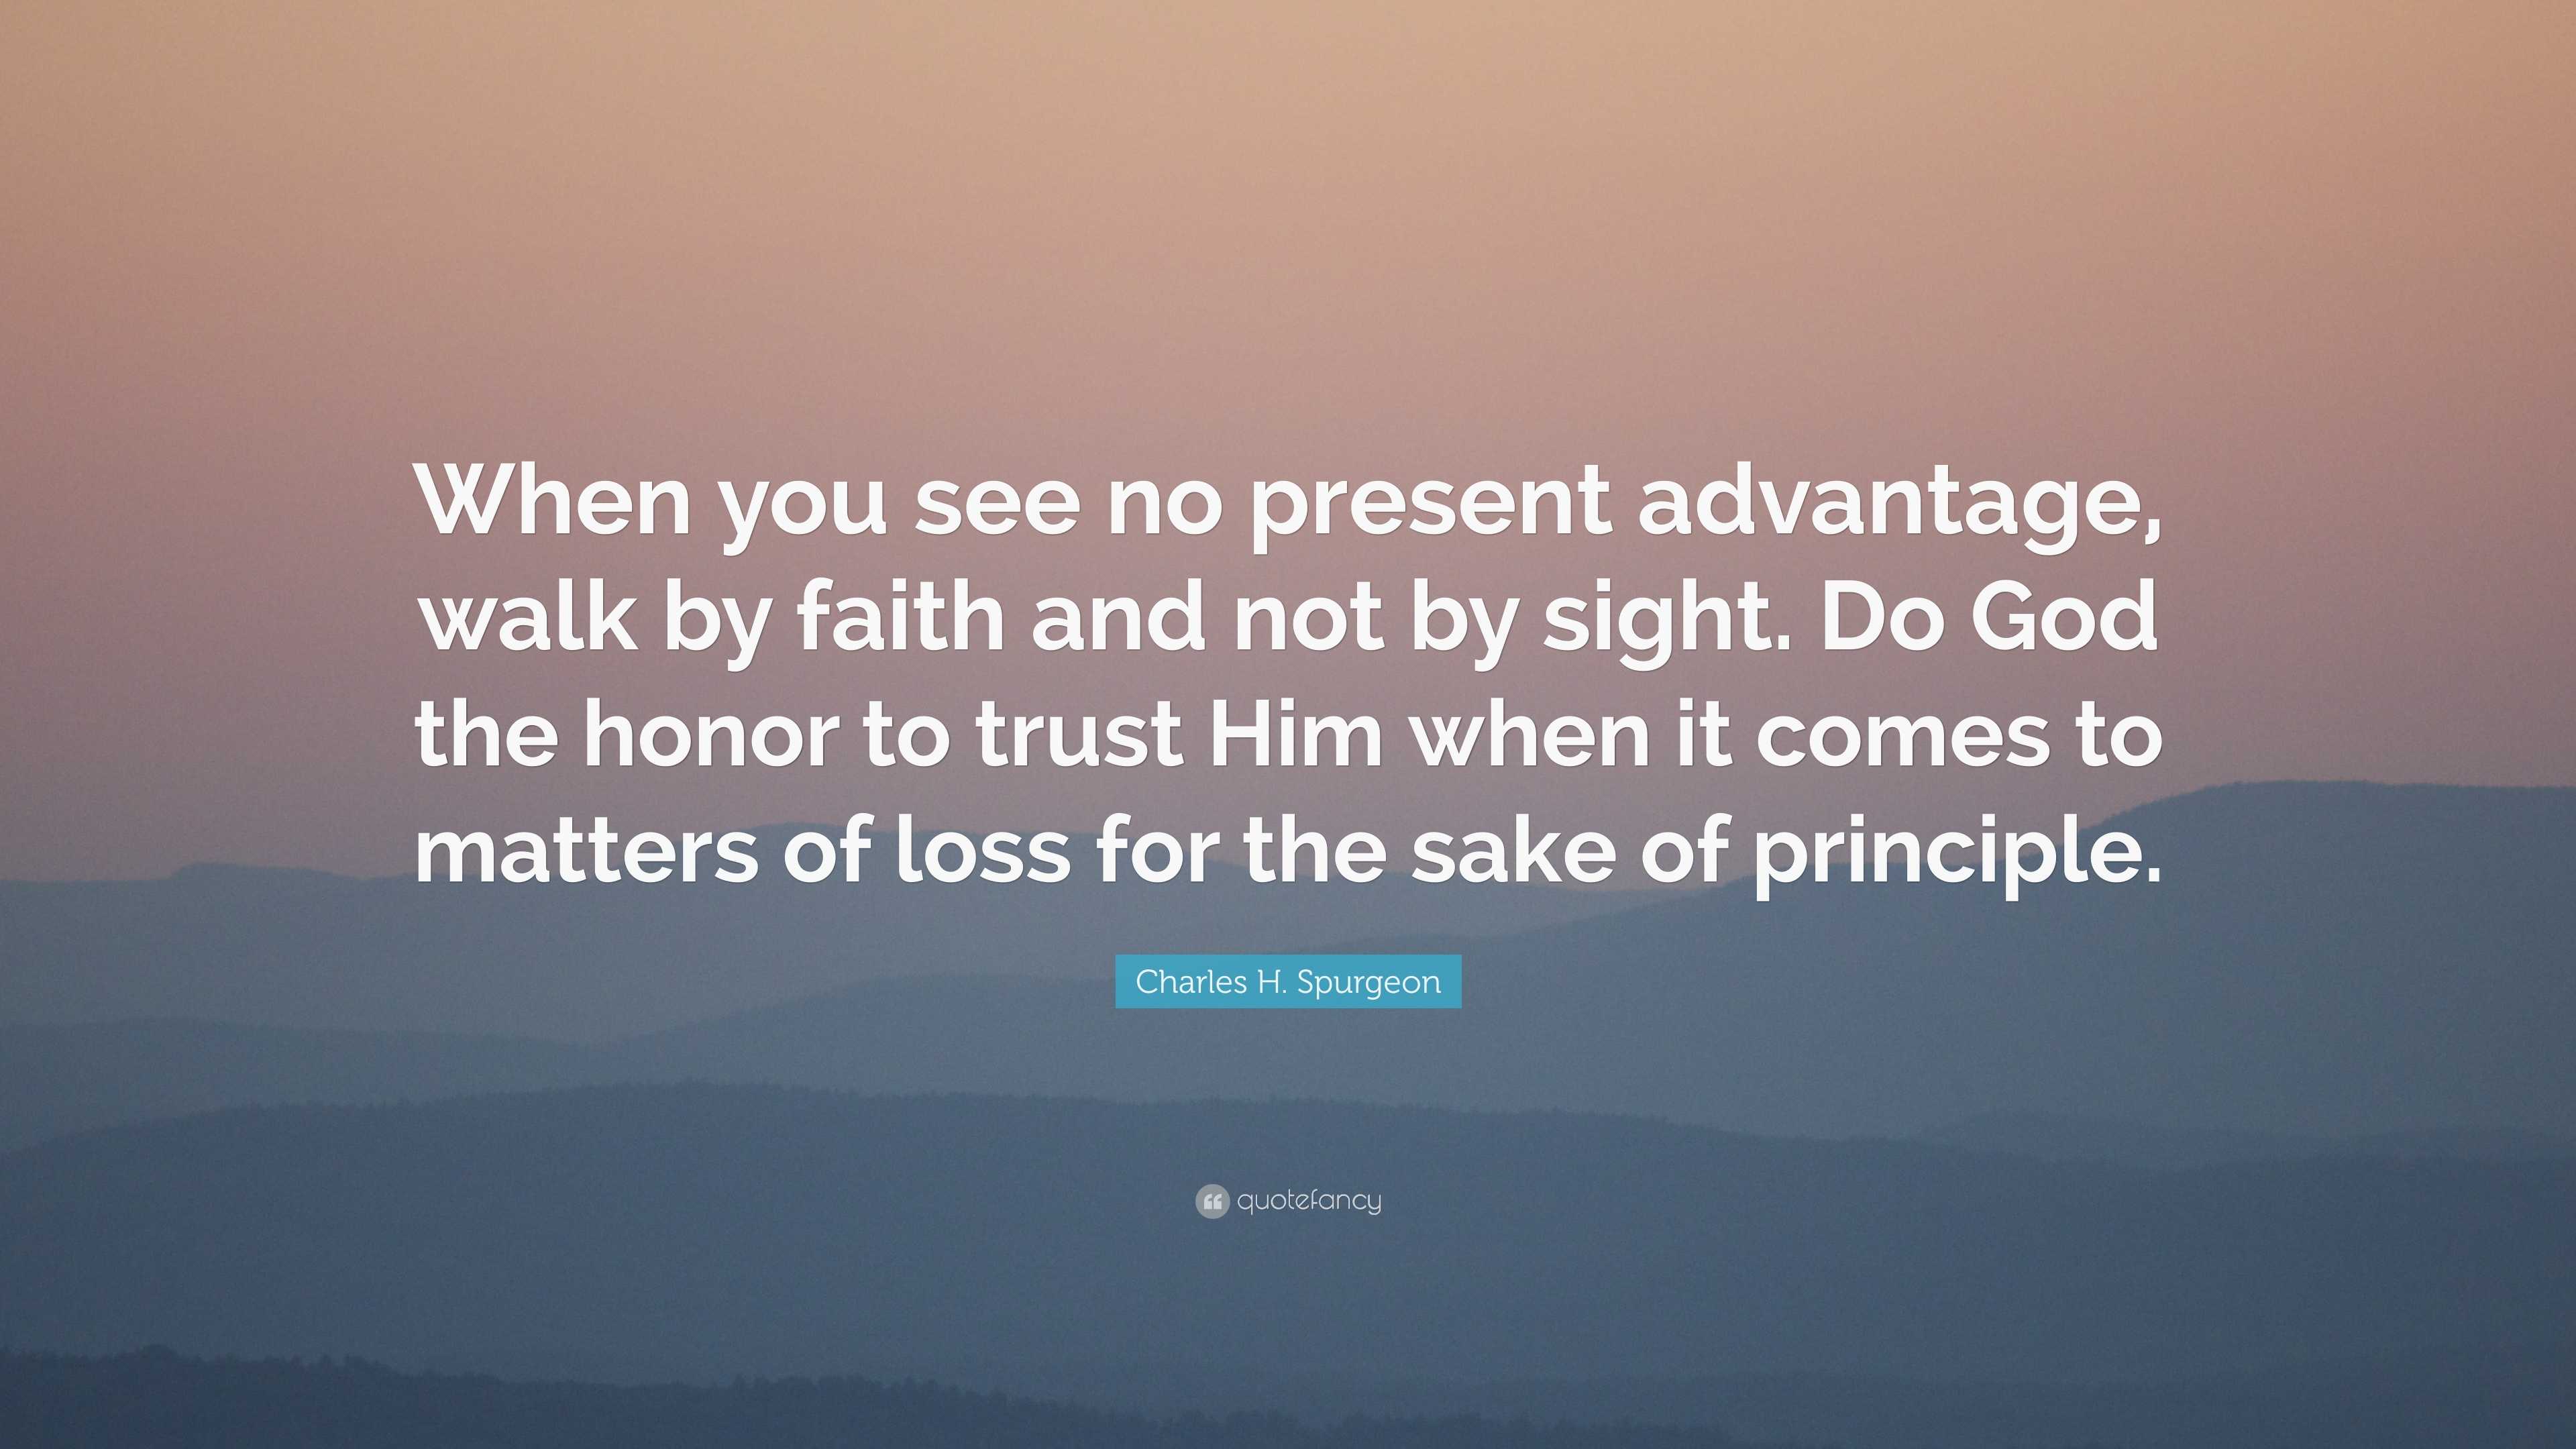 Charles H Spurgeon Quote When You See No Present Advantage Walk